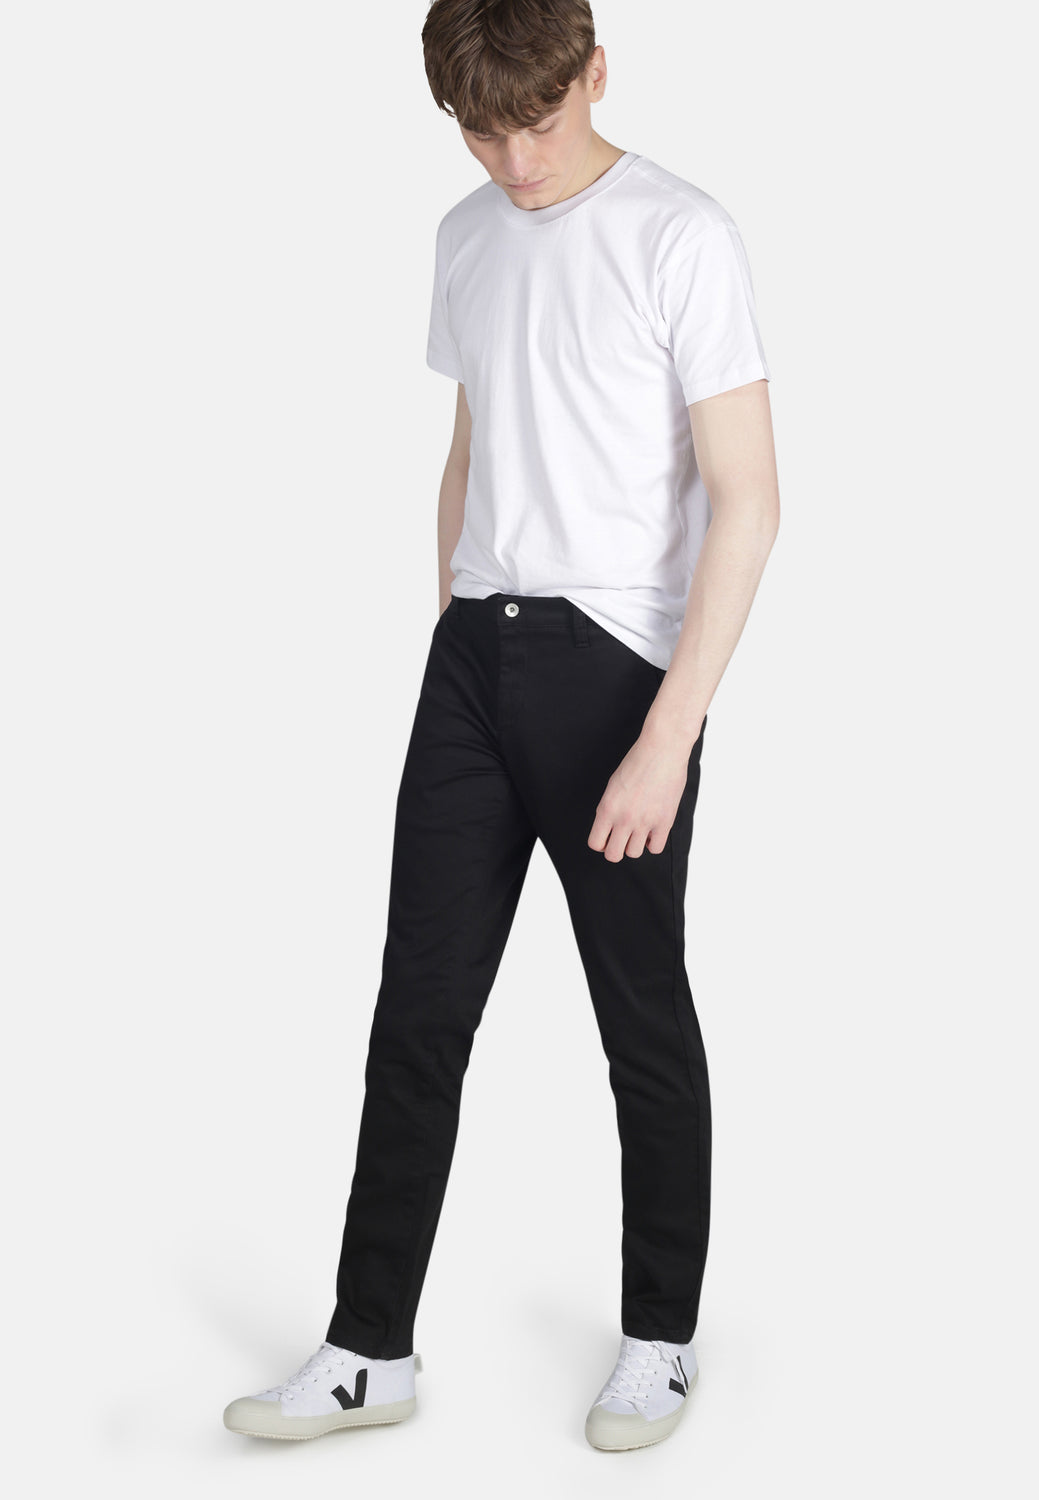 CHINO // Organic Sateen Chino in Black - Monkee Genes Organic Jeans Denim - Men's Chinos Monkee Genes Official  Monkee Genes Official